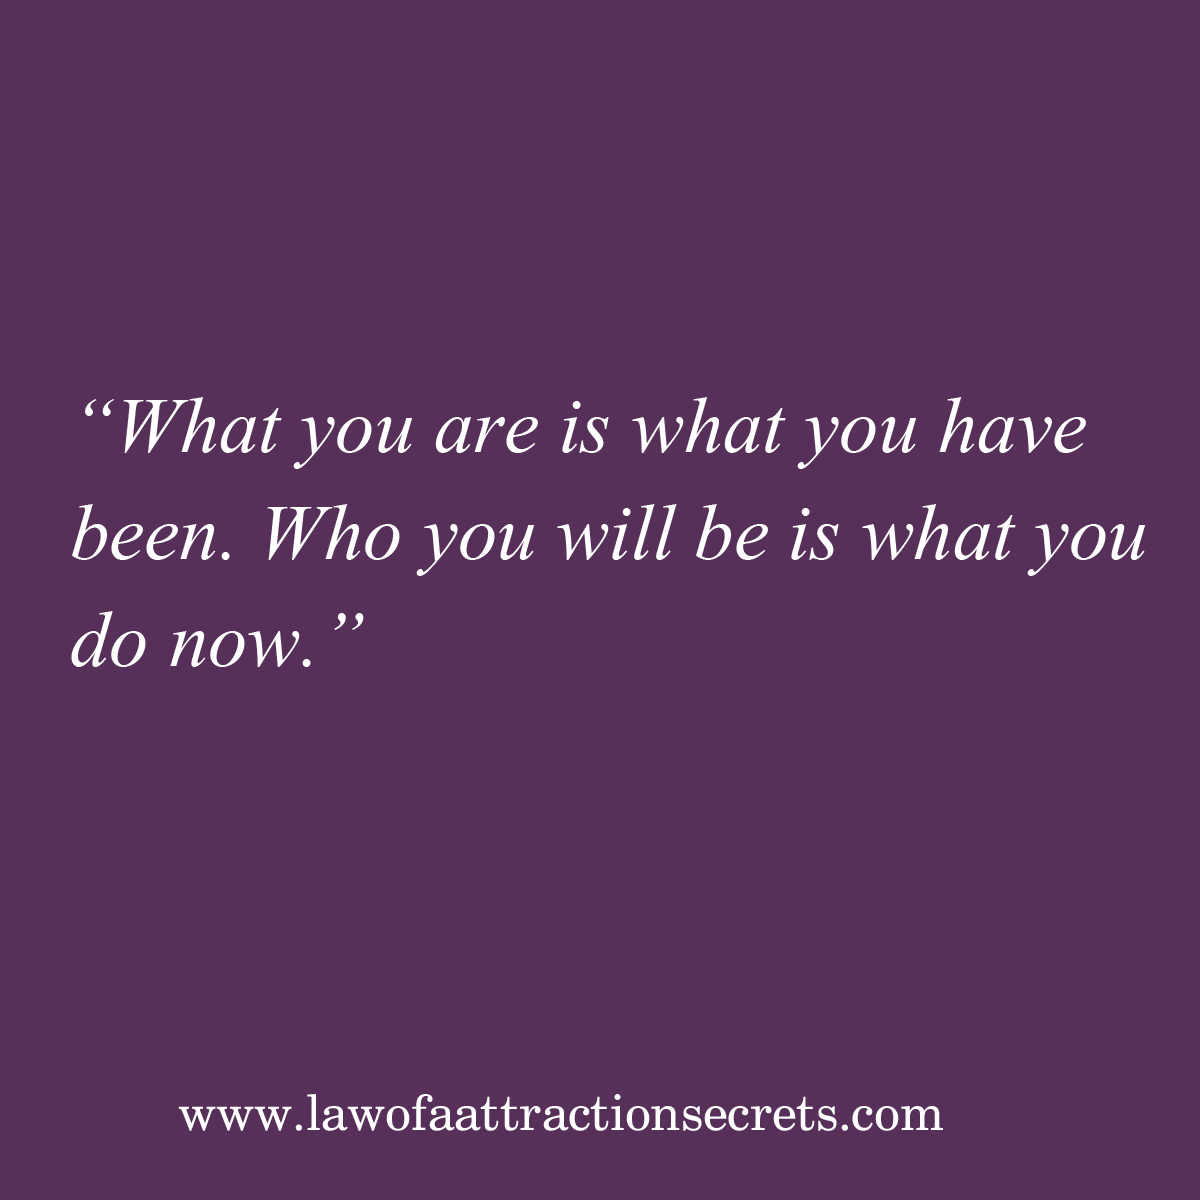 What you are is what you have been. Who you will be is what you do now. http://t.co/OTSQAIby9u http://t.co/4PYNbmpehr